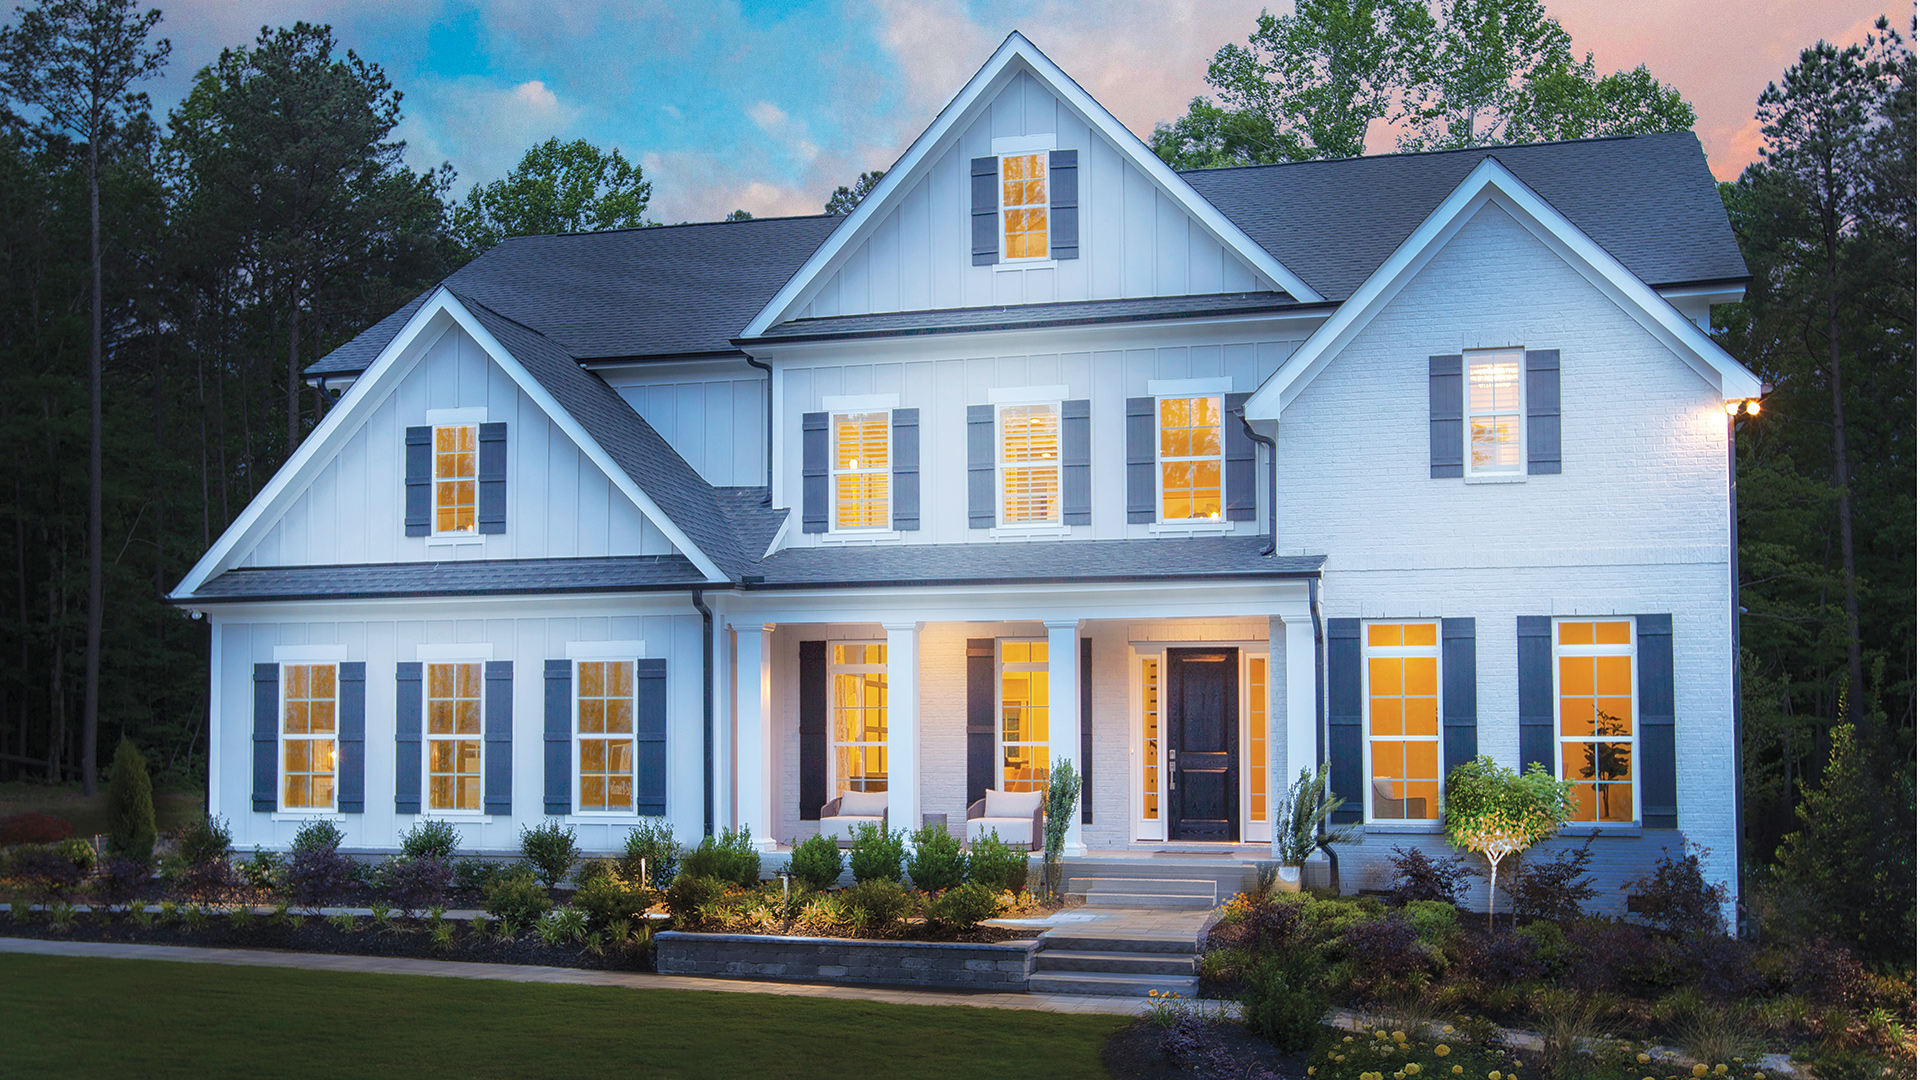 Build the home of your dreams in Apex